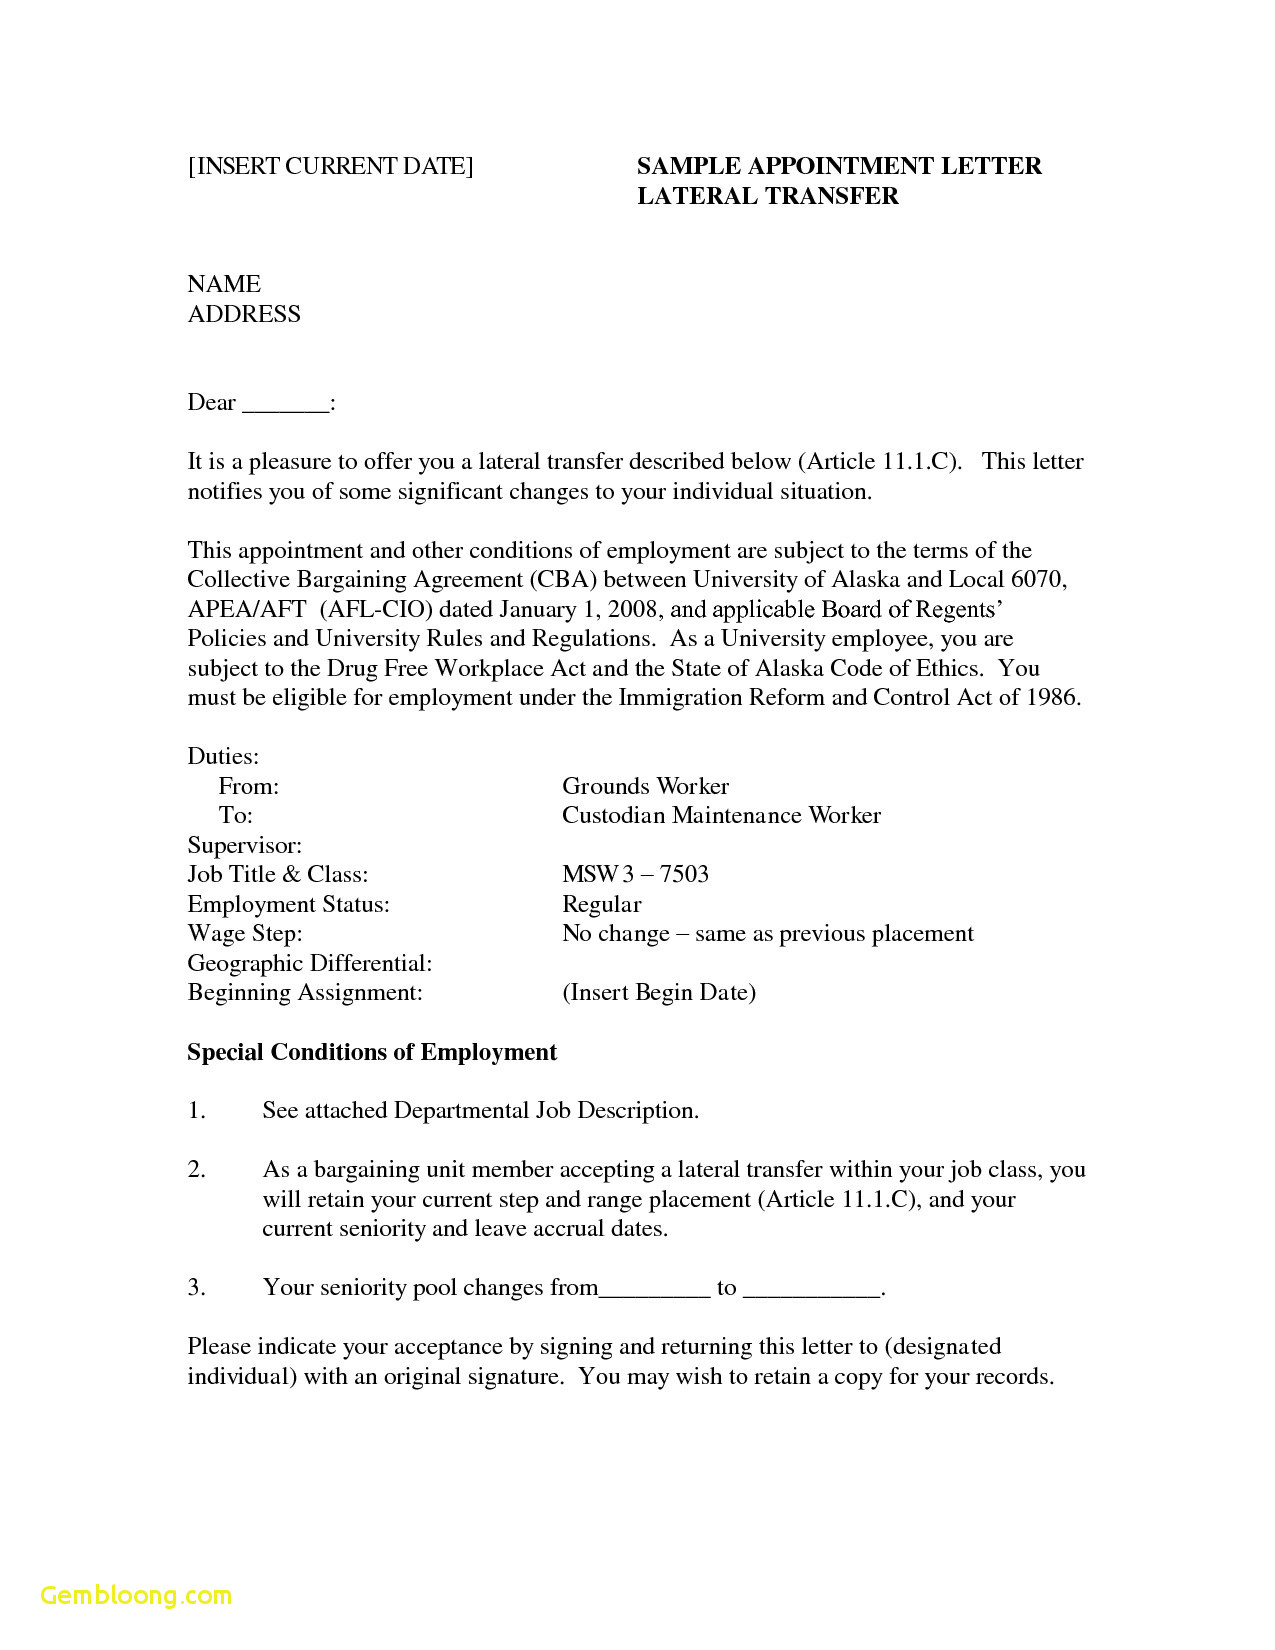 Free Employment Cover Letter Template - Teaching Resume Cover Letter Free Download Cover Letter Template